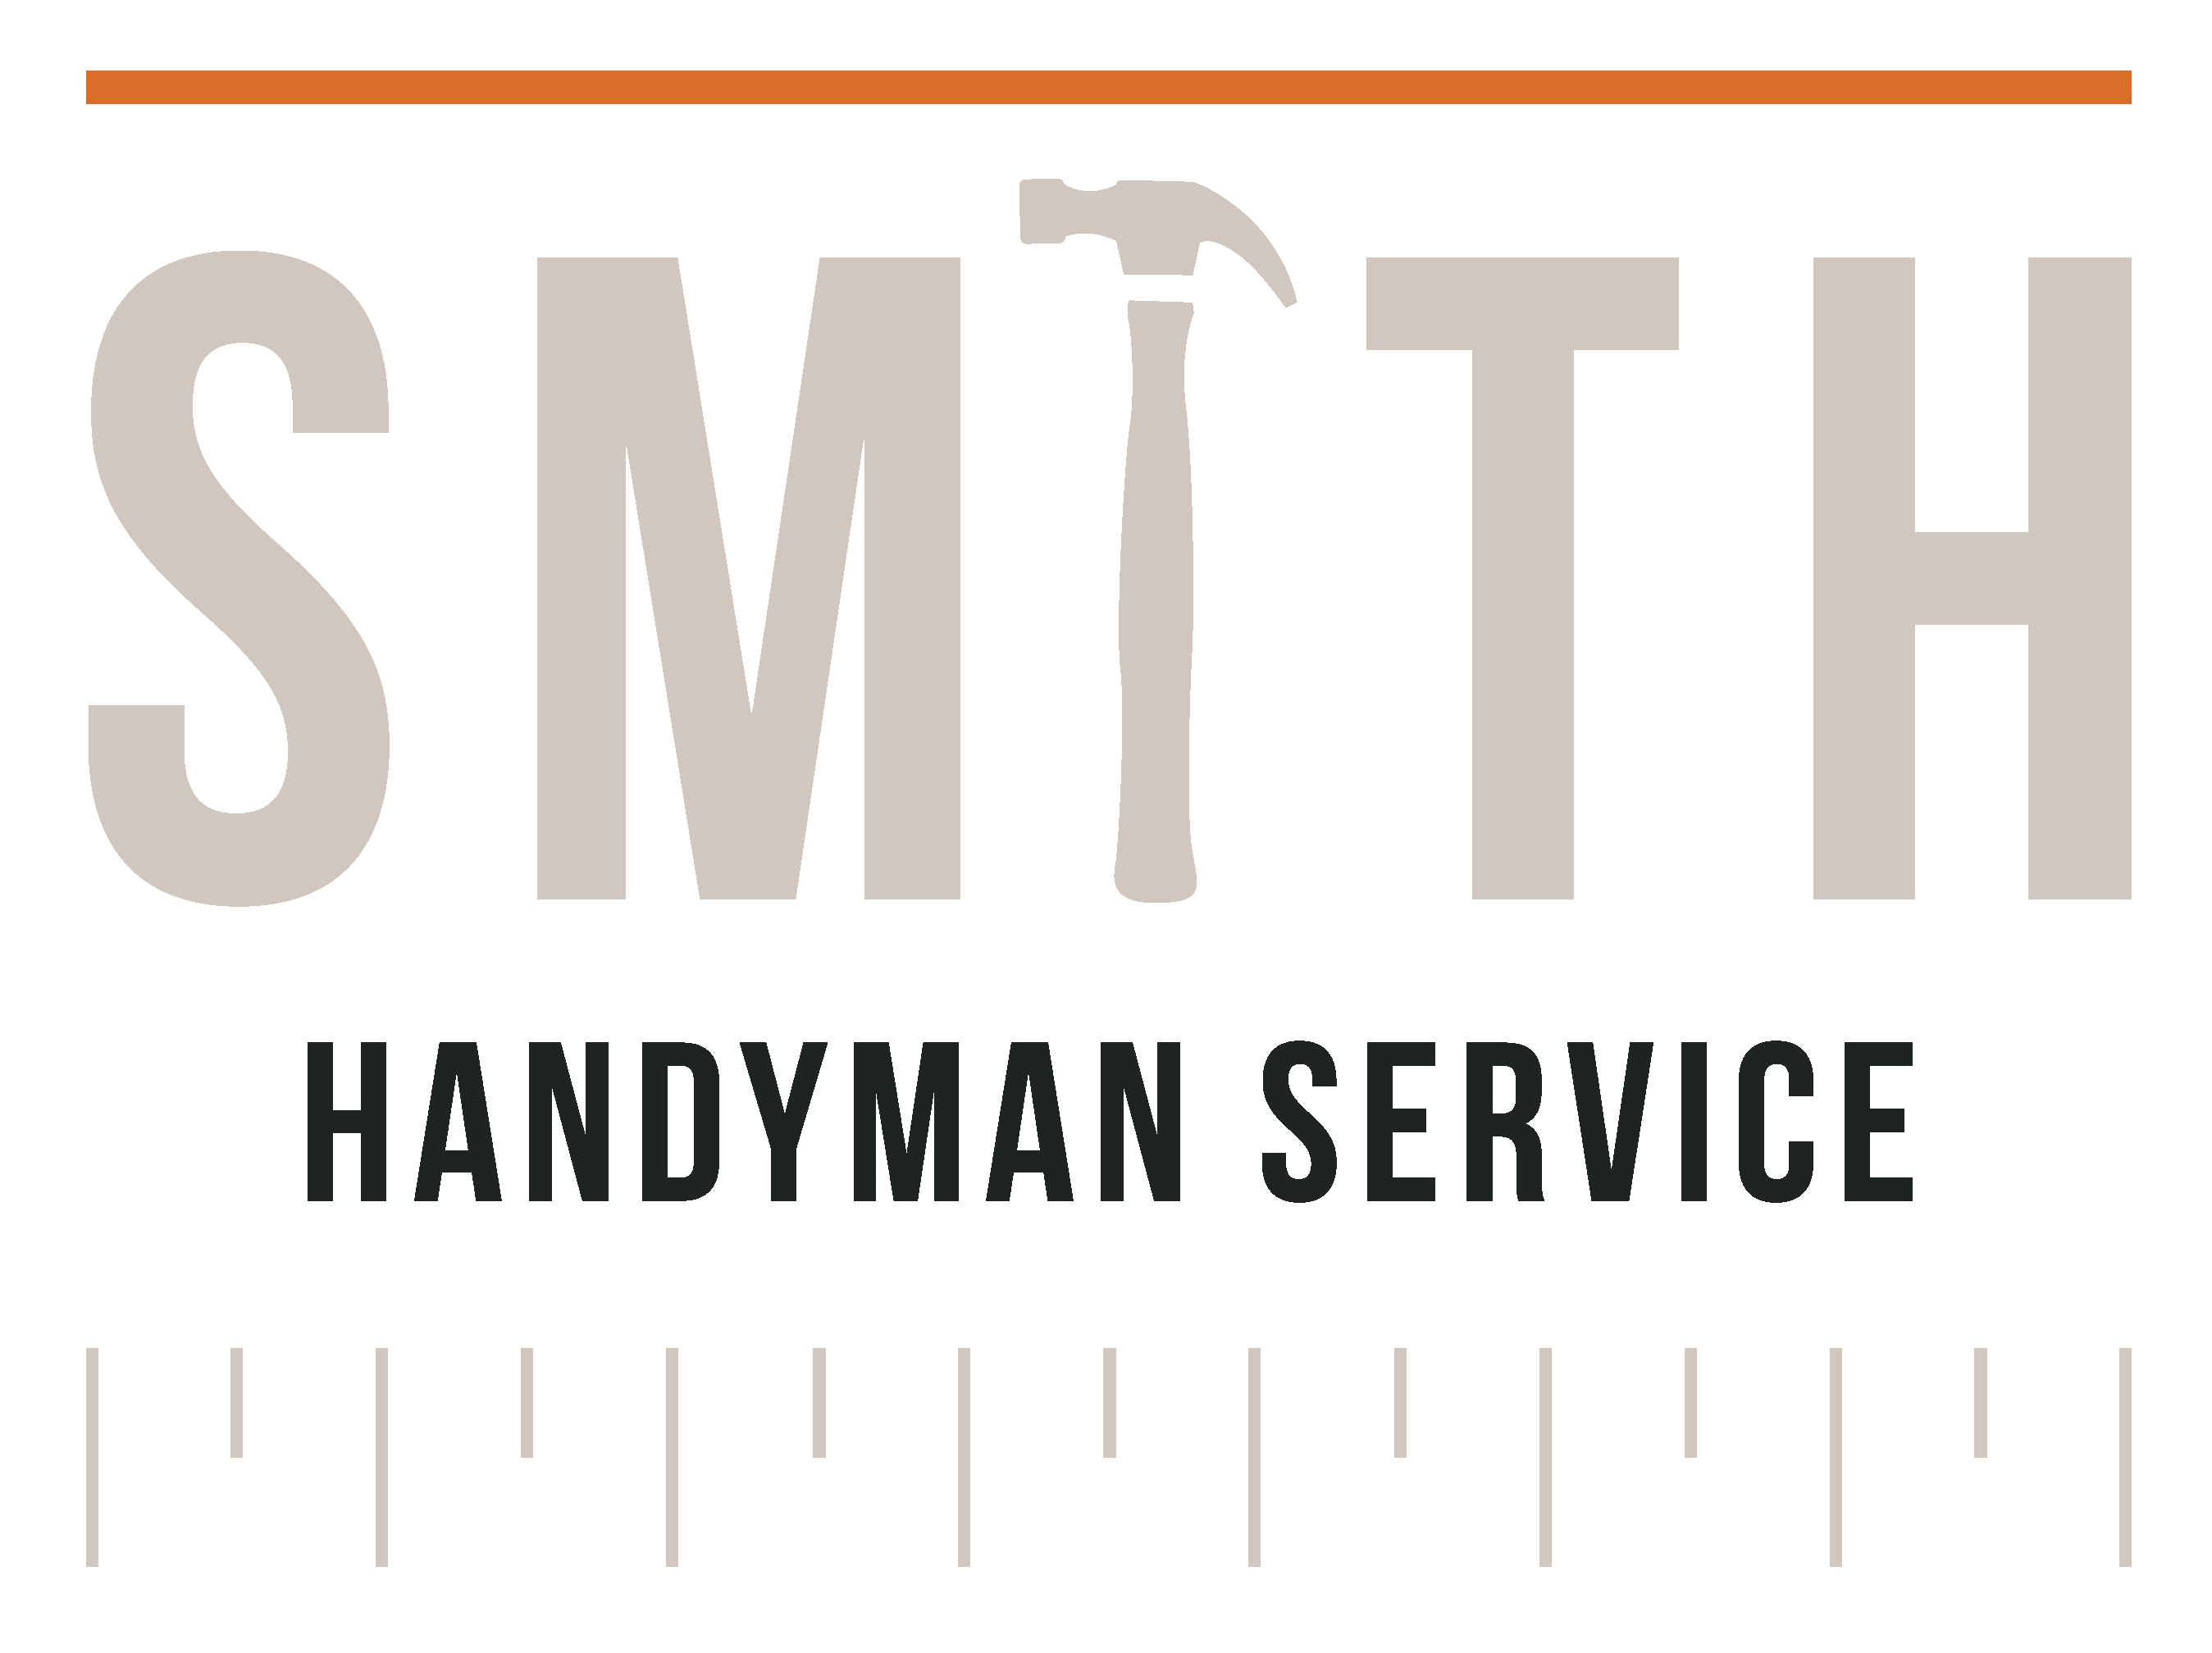 smith handyman service in knoxville tn